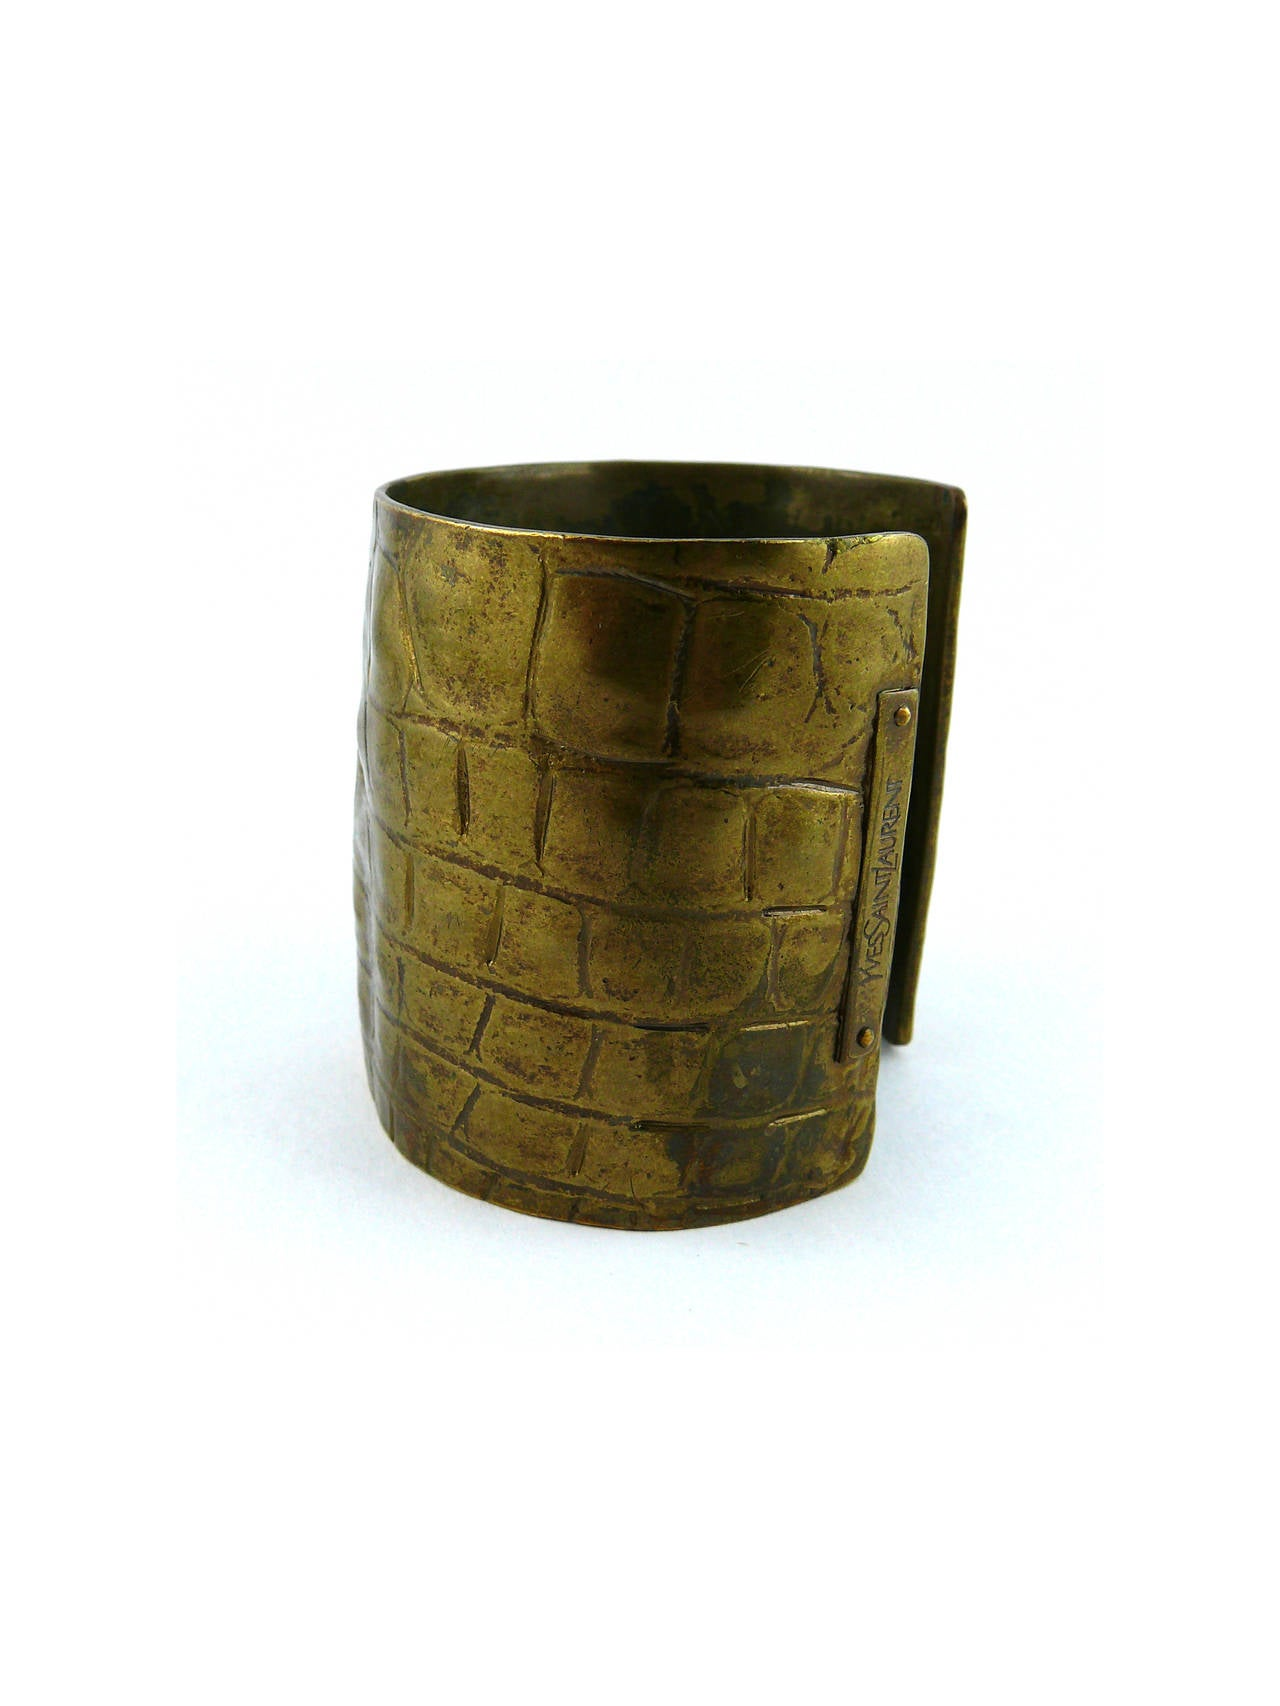 Yves Saint Laurent YSL by Tom Ford Croc-Embossed Cuff Bracelet For Sale 1